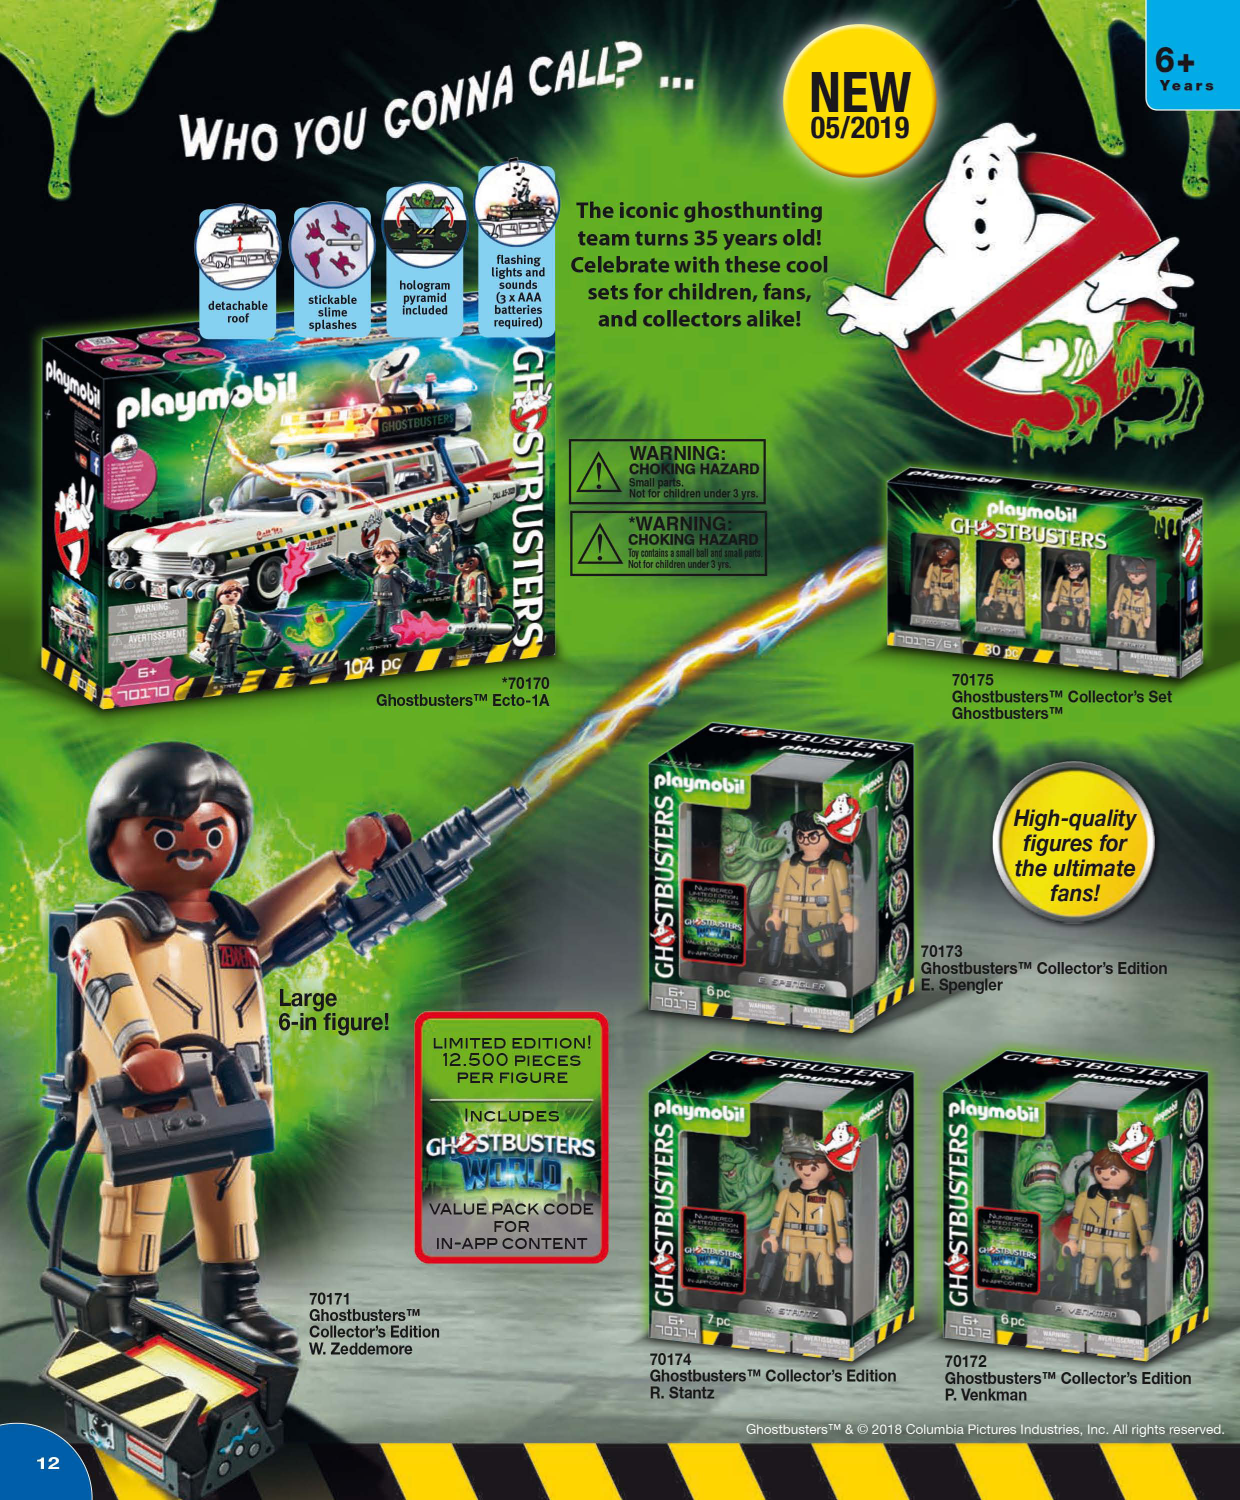 Playmobil: Ghostbusters Collector's Edition E. Spengler